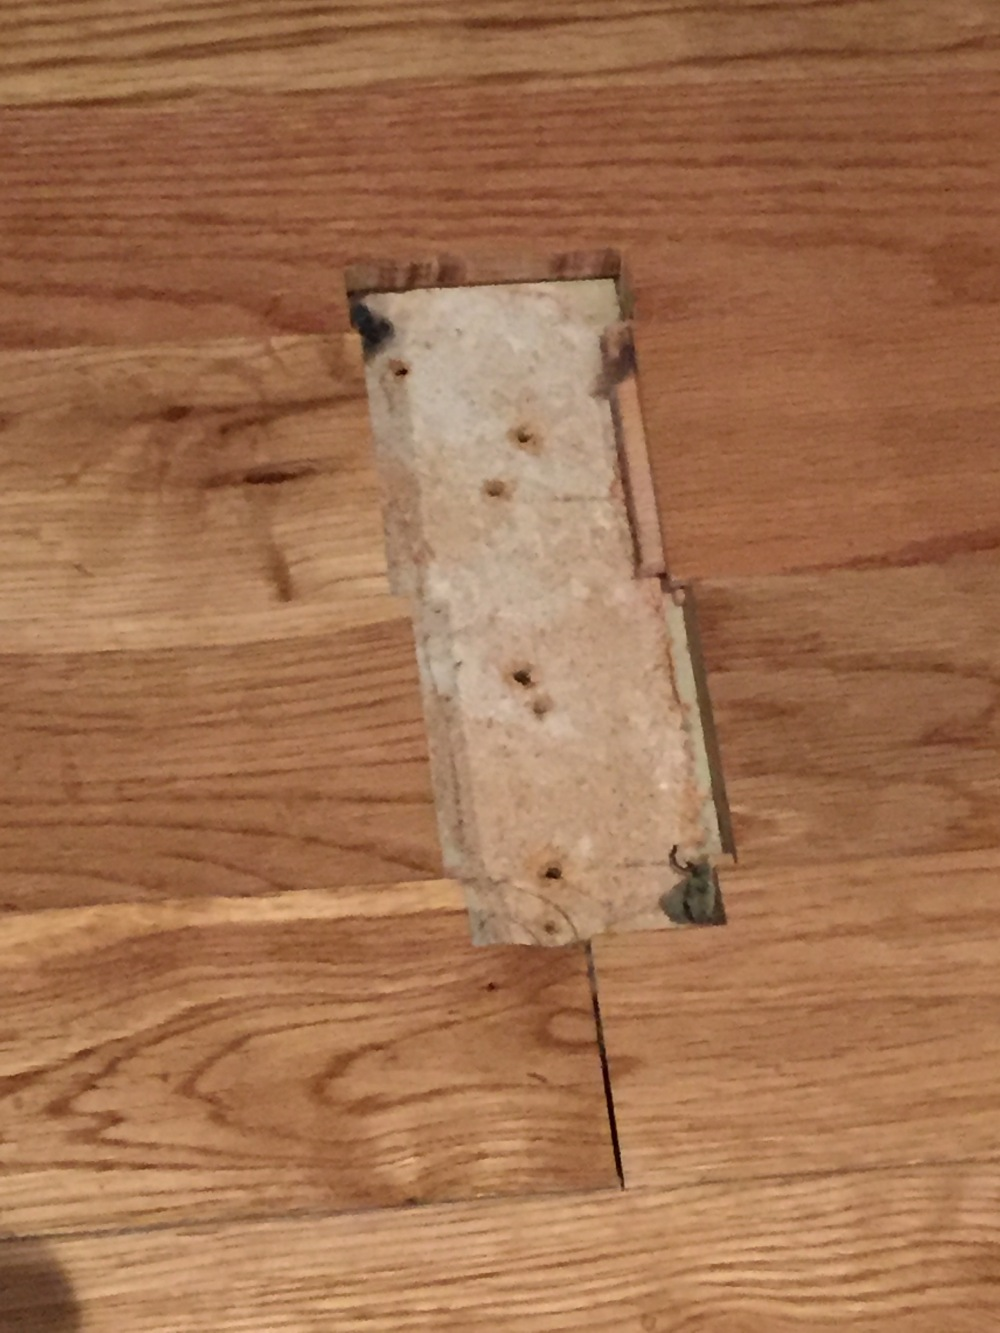 Actual Hole in the Wood Floor Where the Door Slide Was